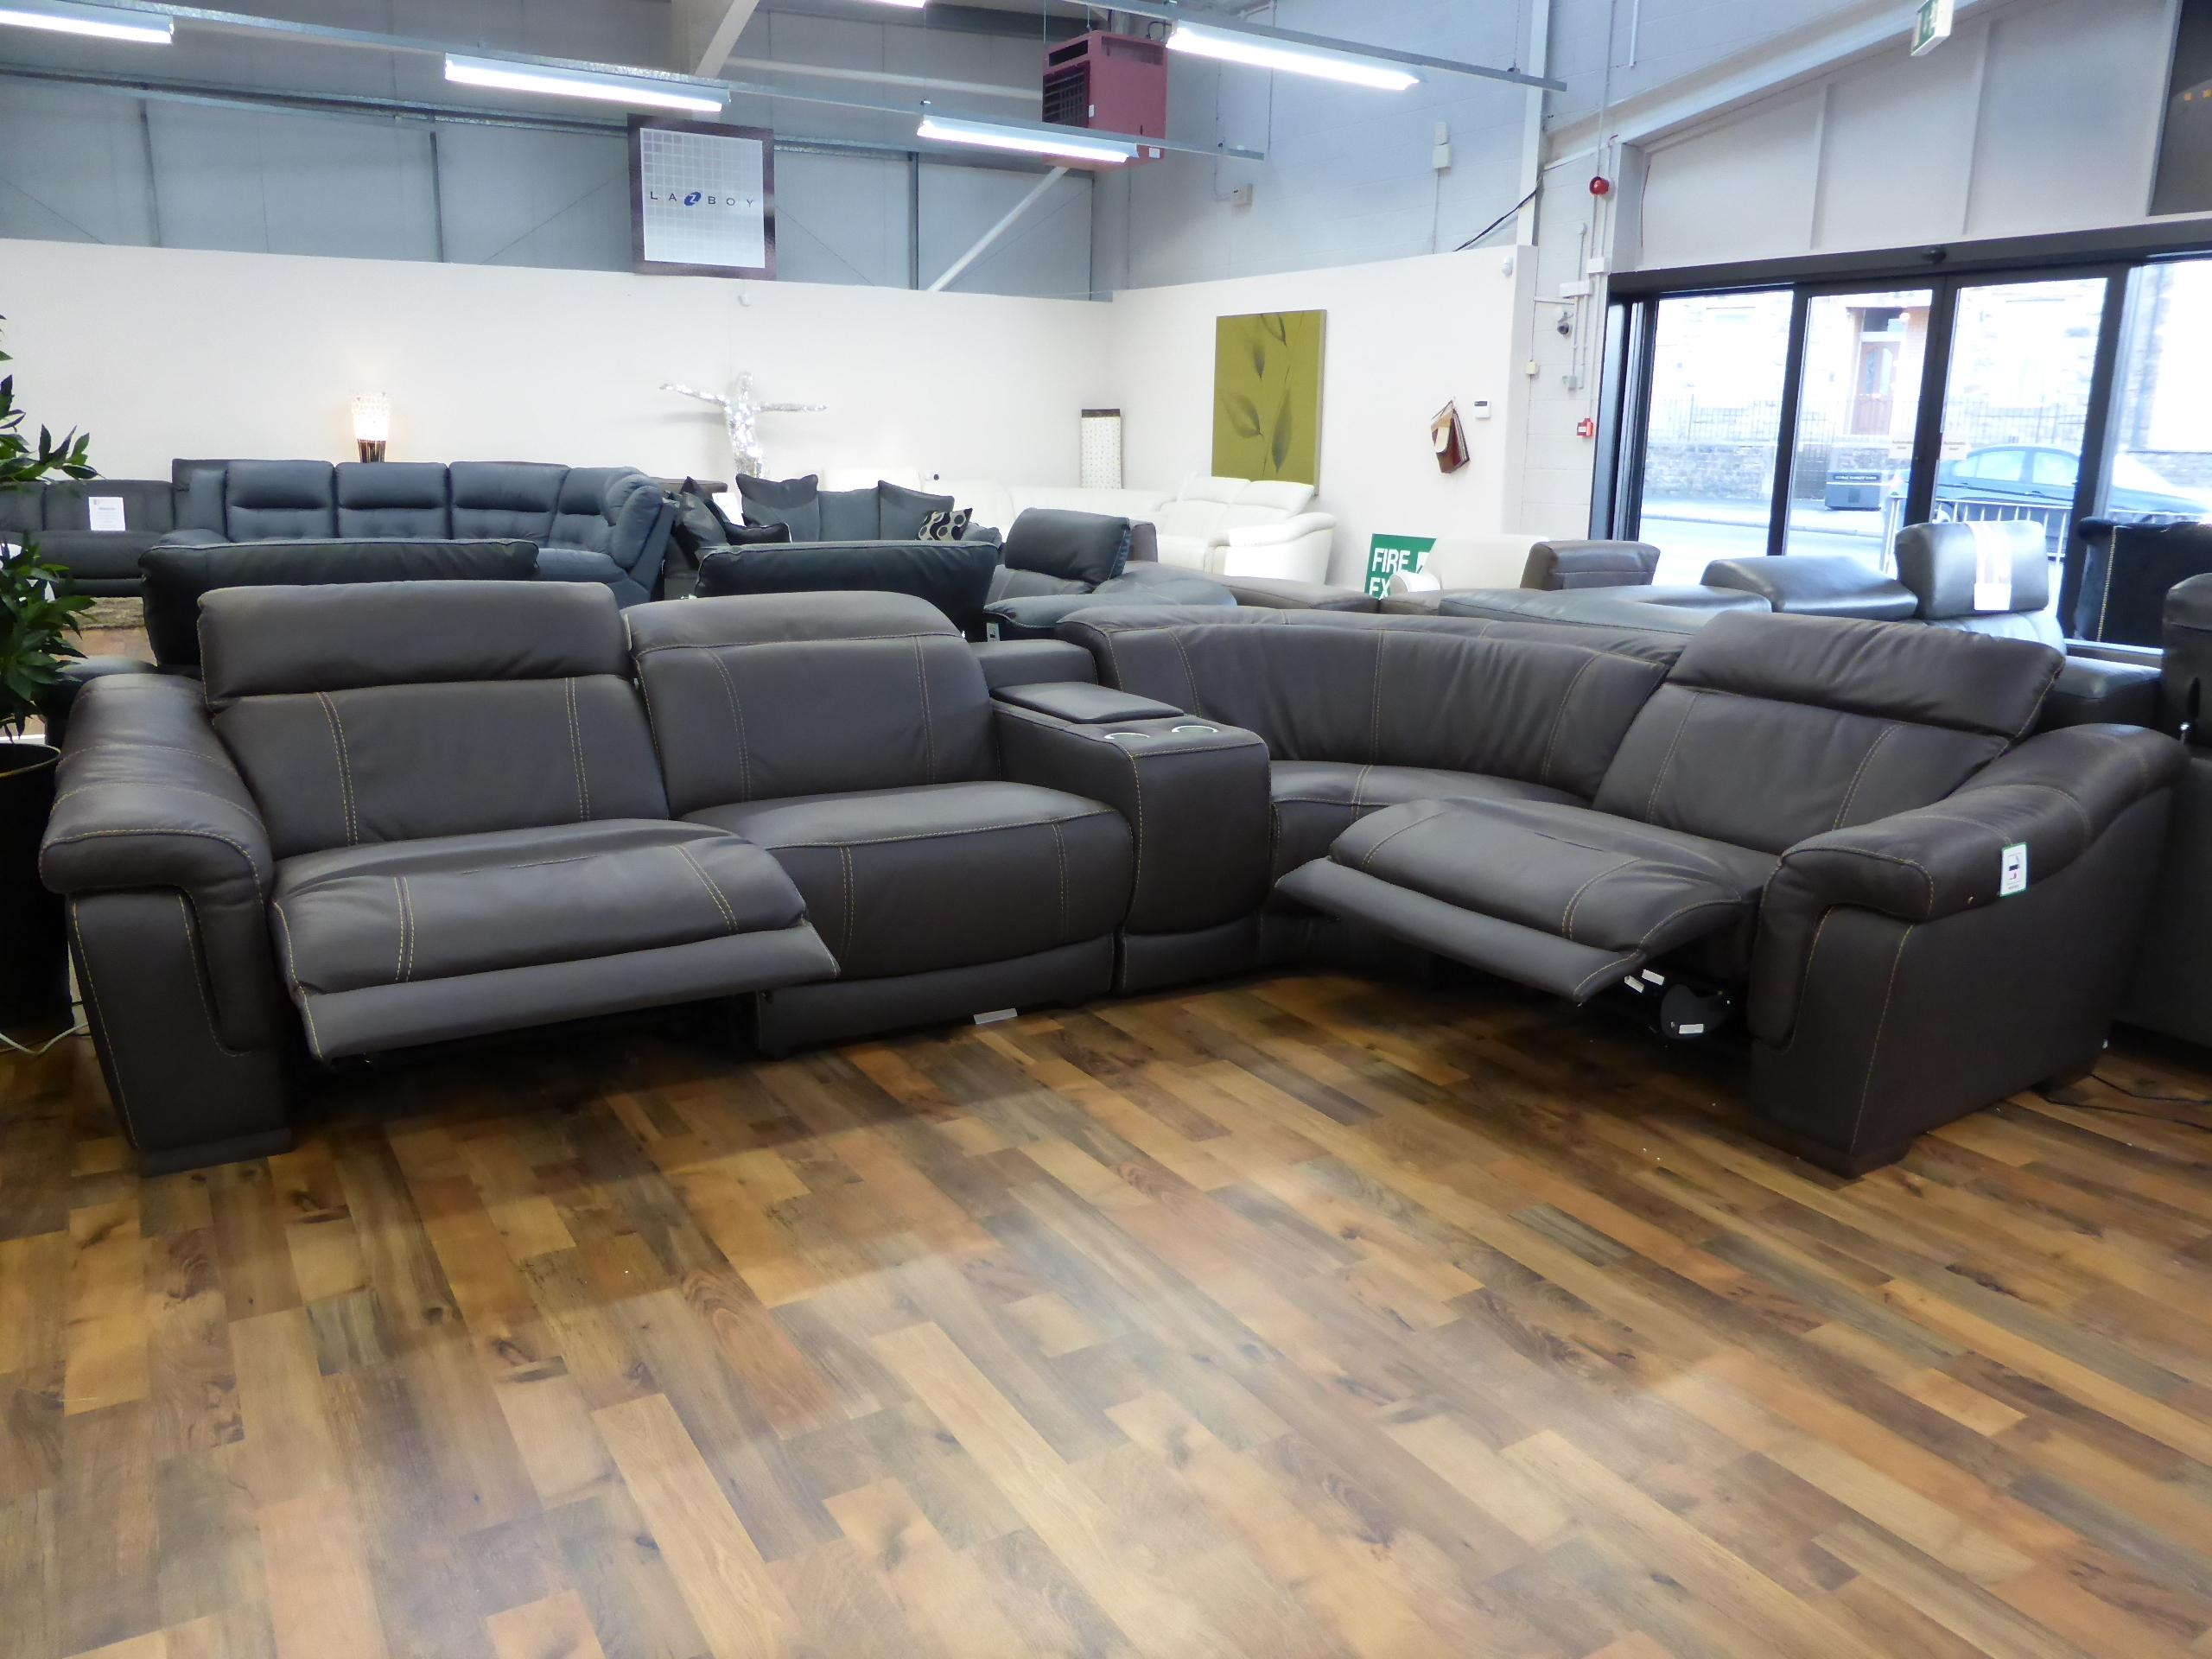 Italian Leather Reclining Sofa | Sofa Gallery | Kengire With Regard To Italian Recliner Sofas (View 2 of 20)